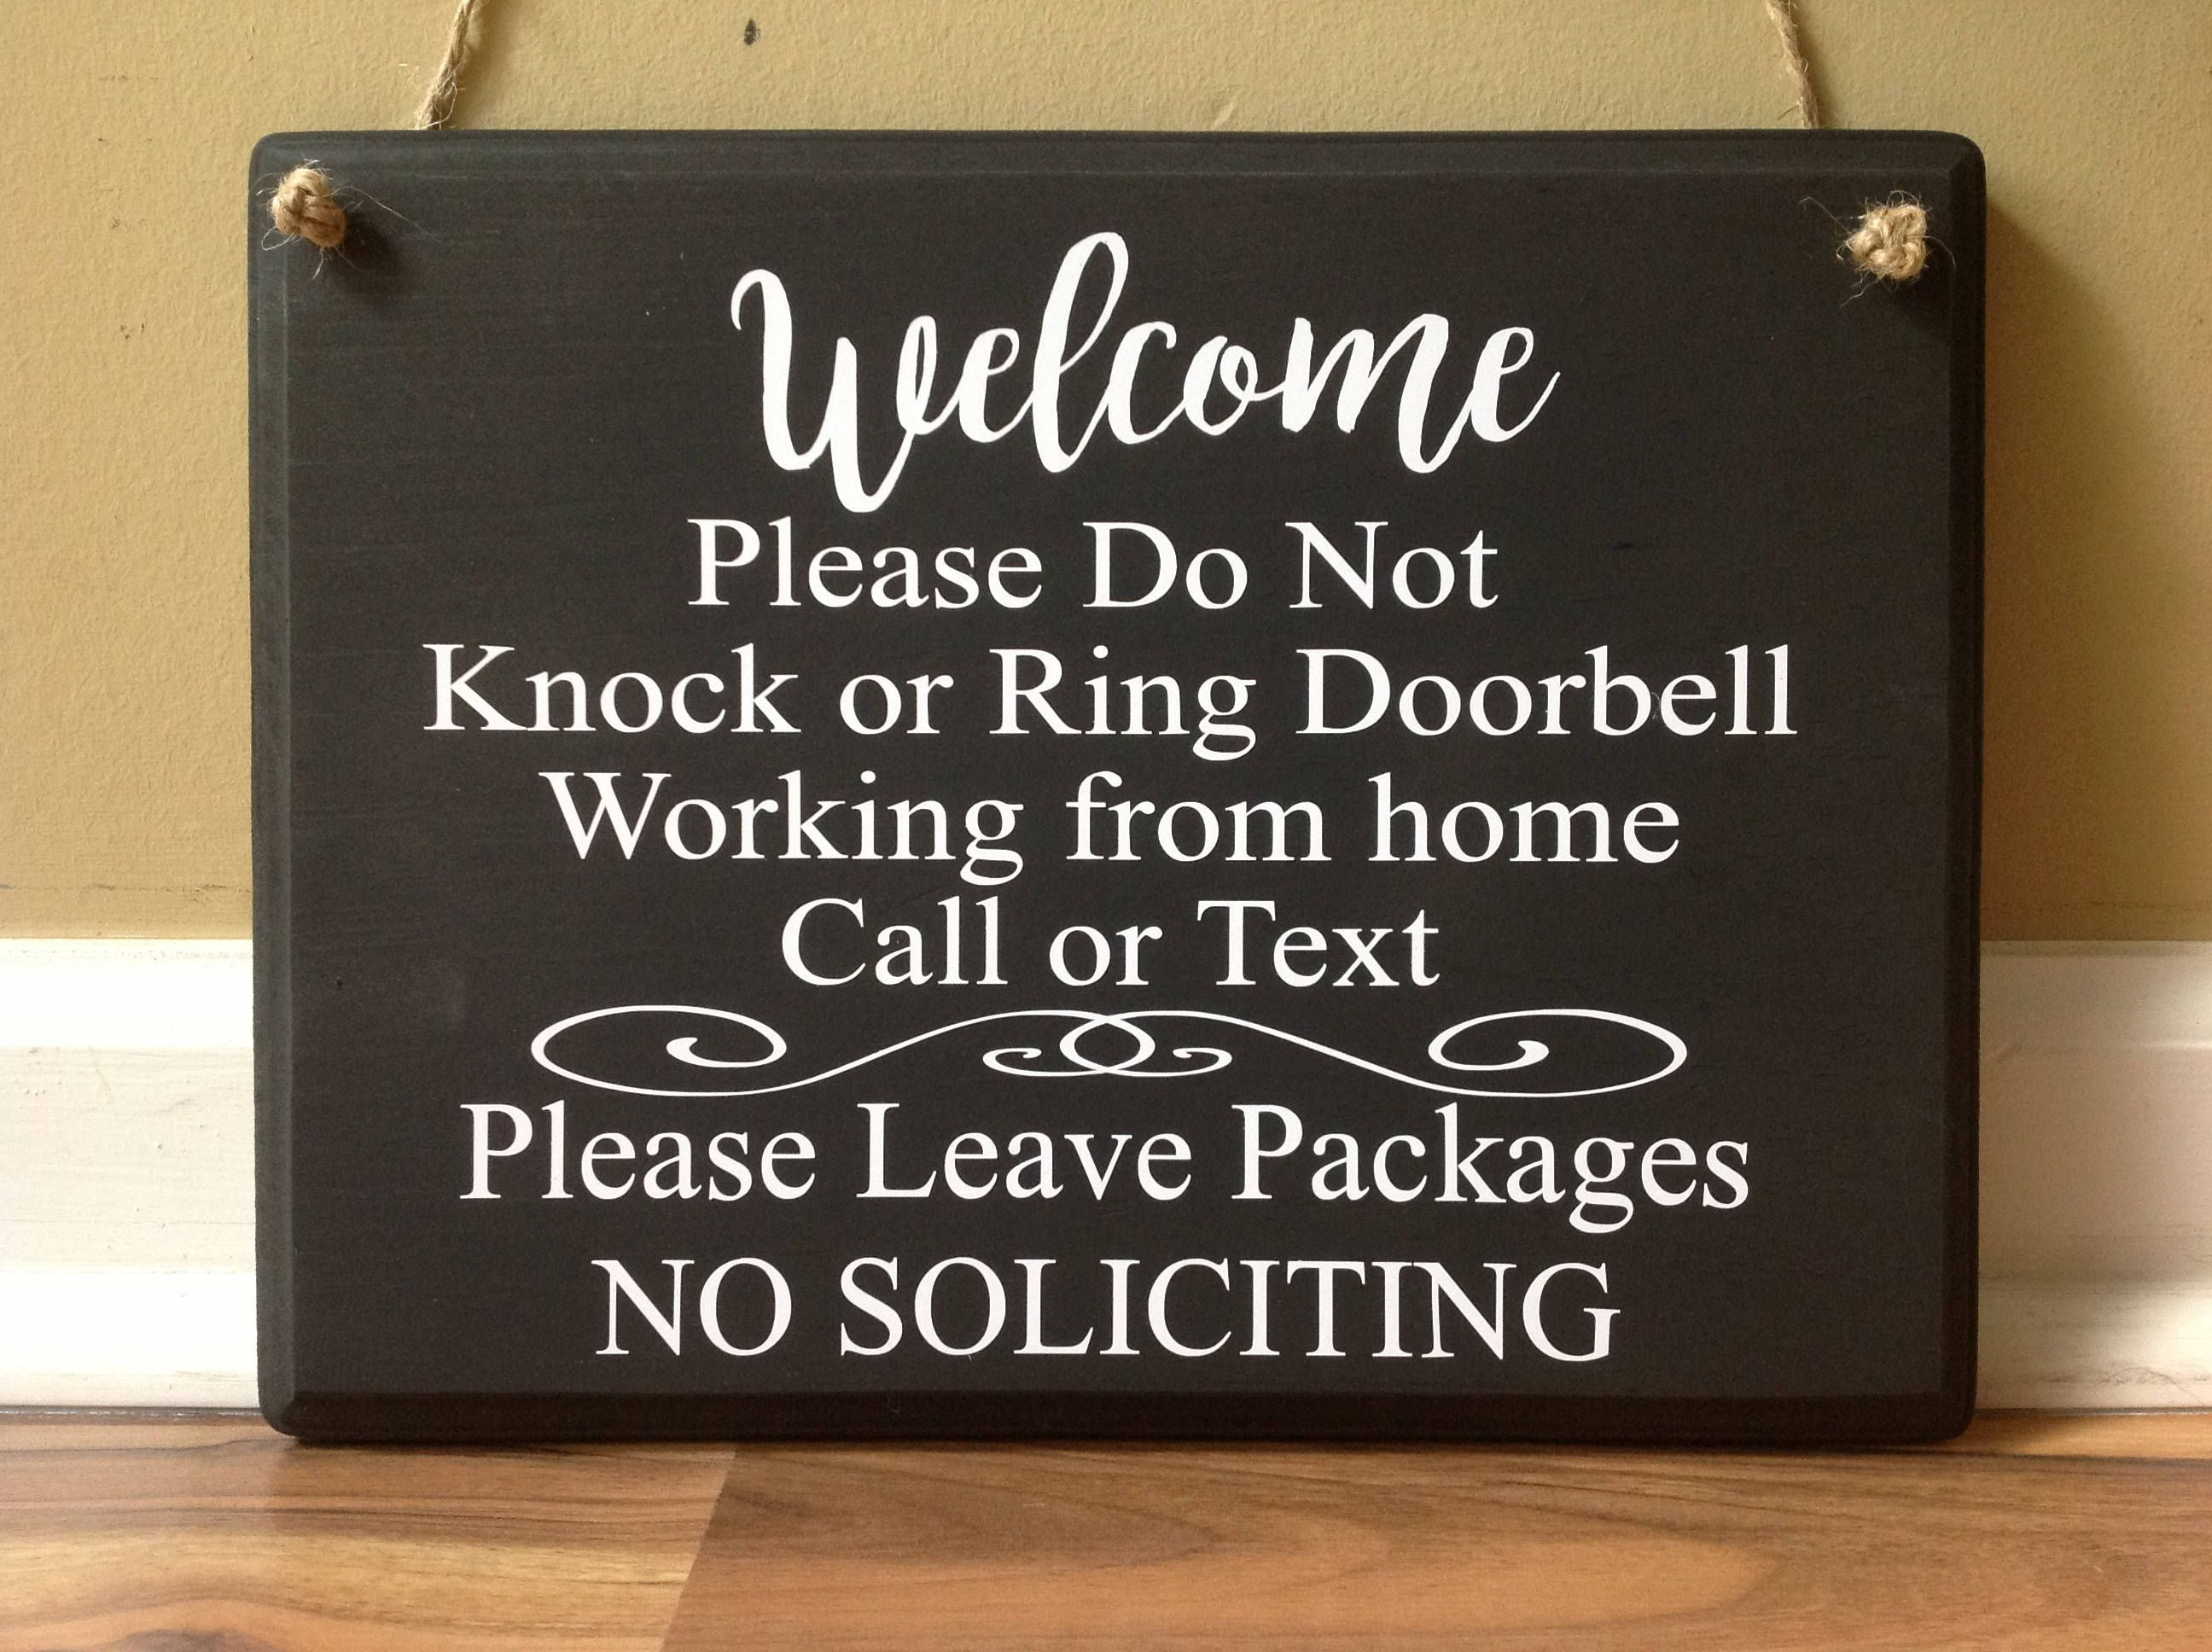 Please do not knock or ring doorbell working from